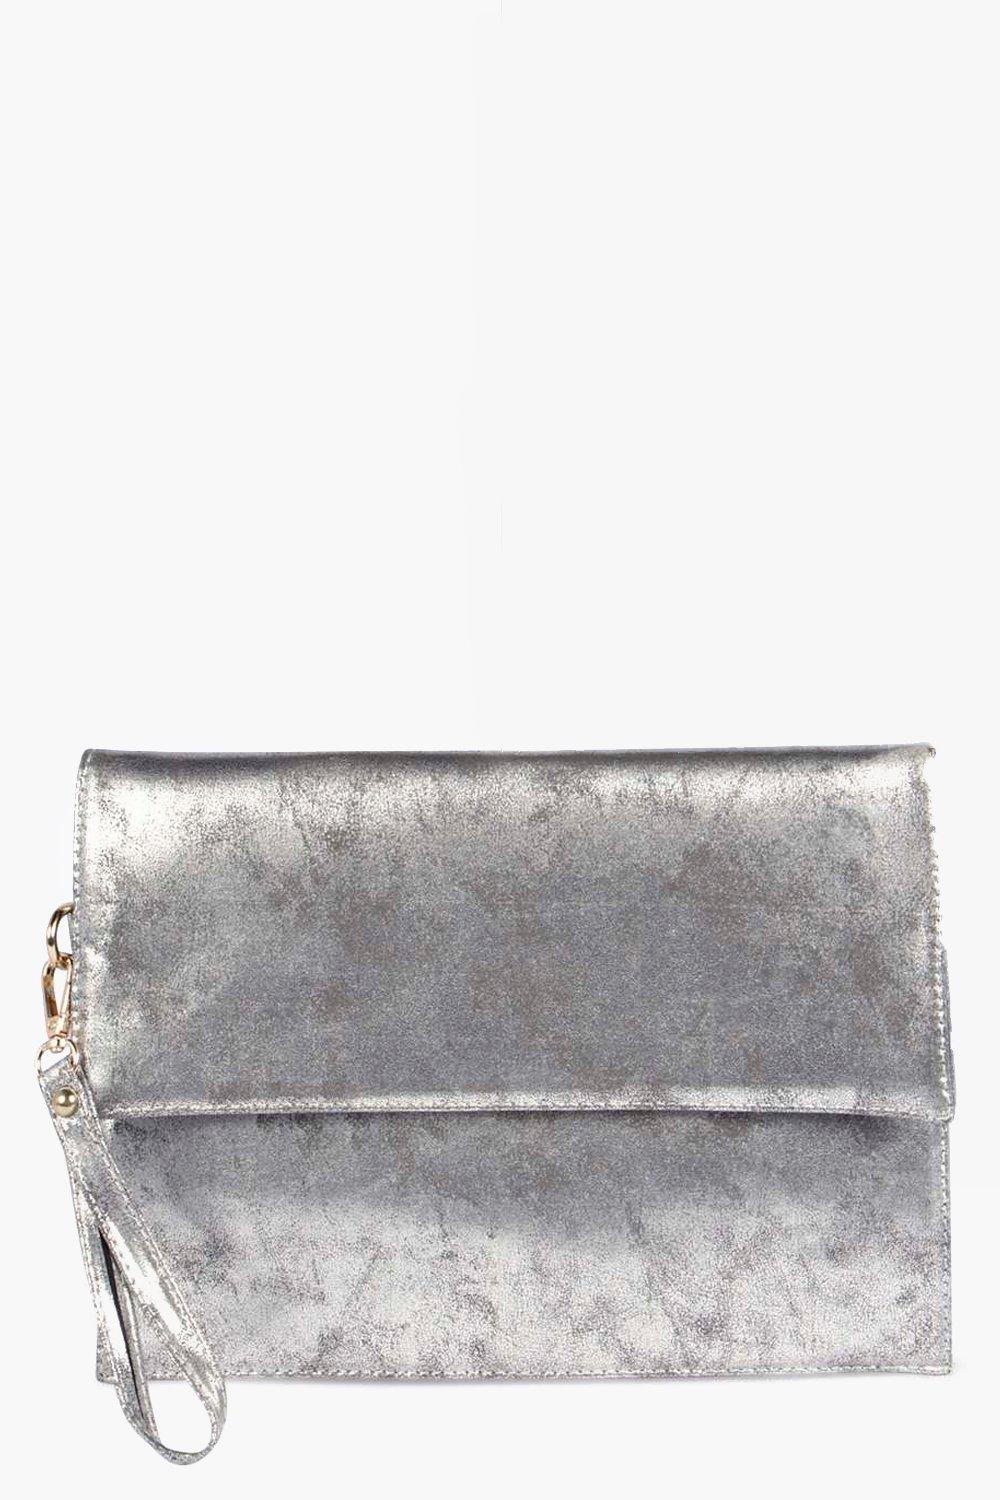 6fc2b73f706 Womens Silver Jess Oversized Clutch Bag. Hover to zoom